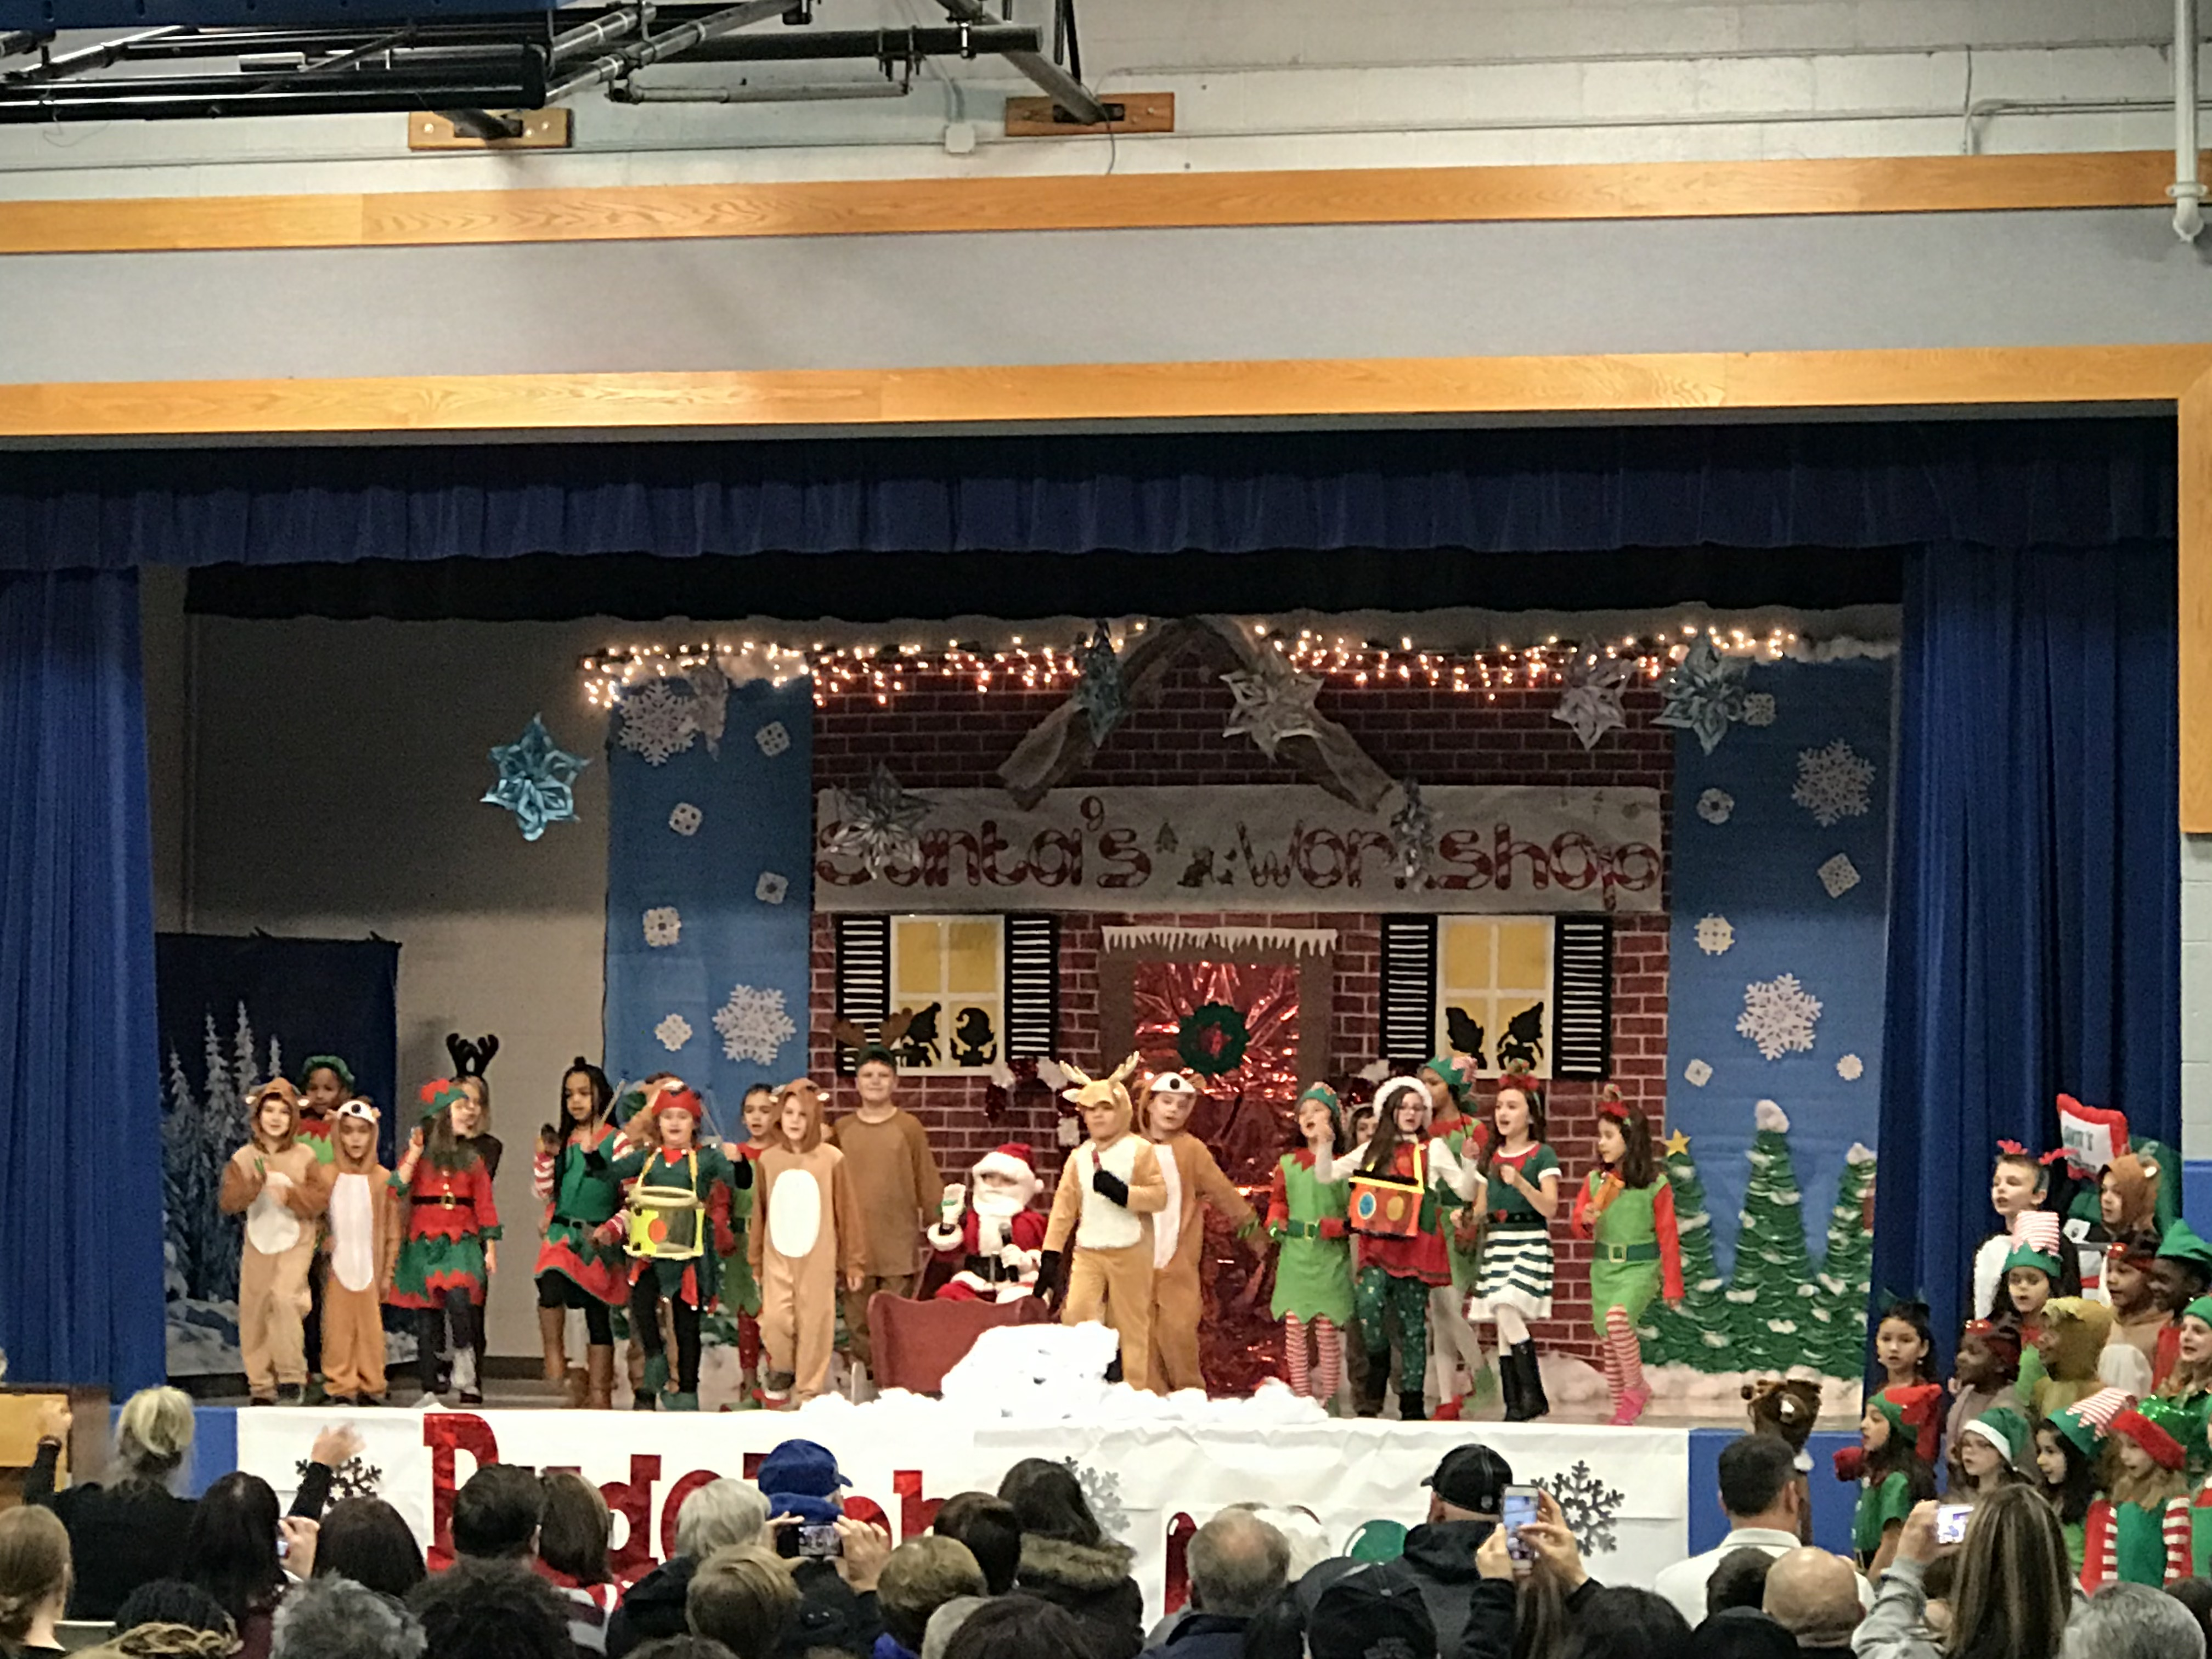 Homan welcomes in the holidays with a holiday performance by the second grade students. Rudolph turn off the Nose